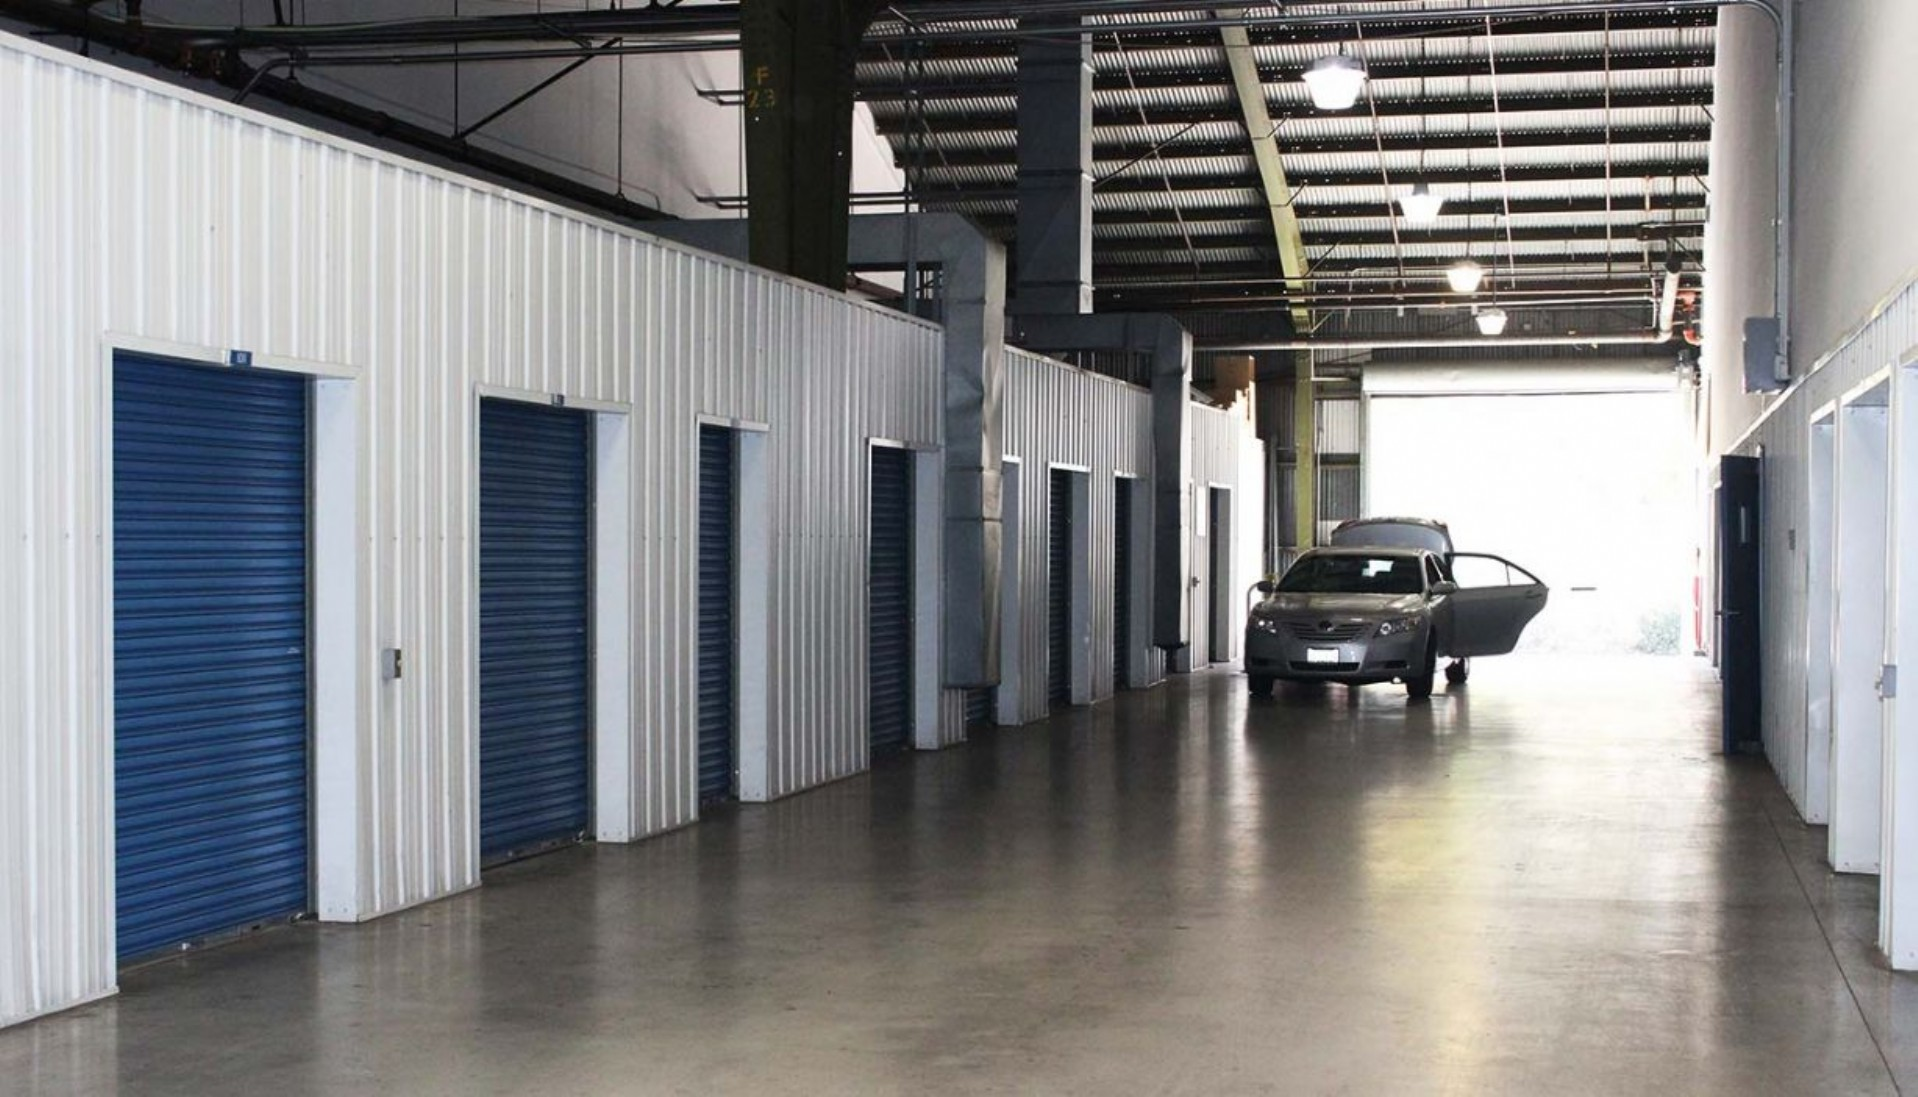 Indoor storage facility with car pulled in next to storage unit